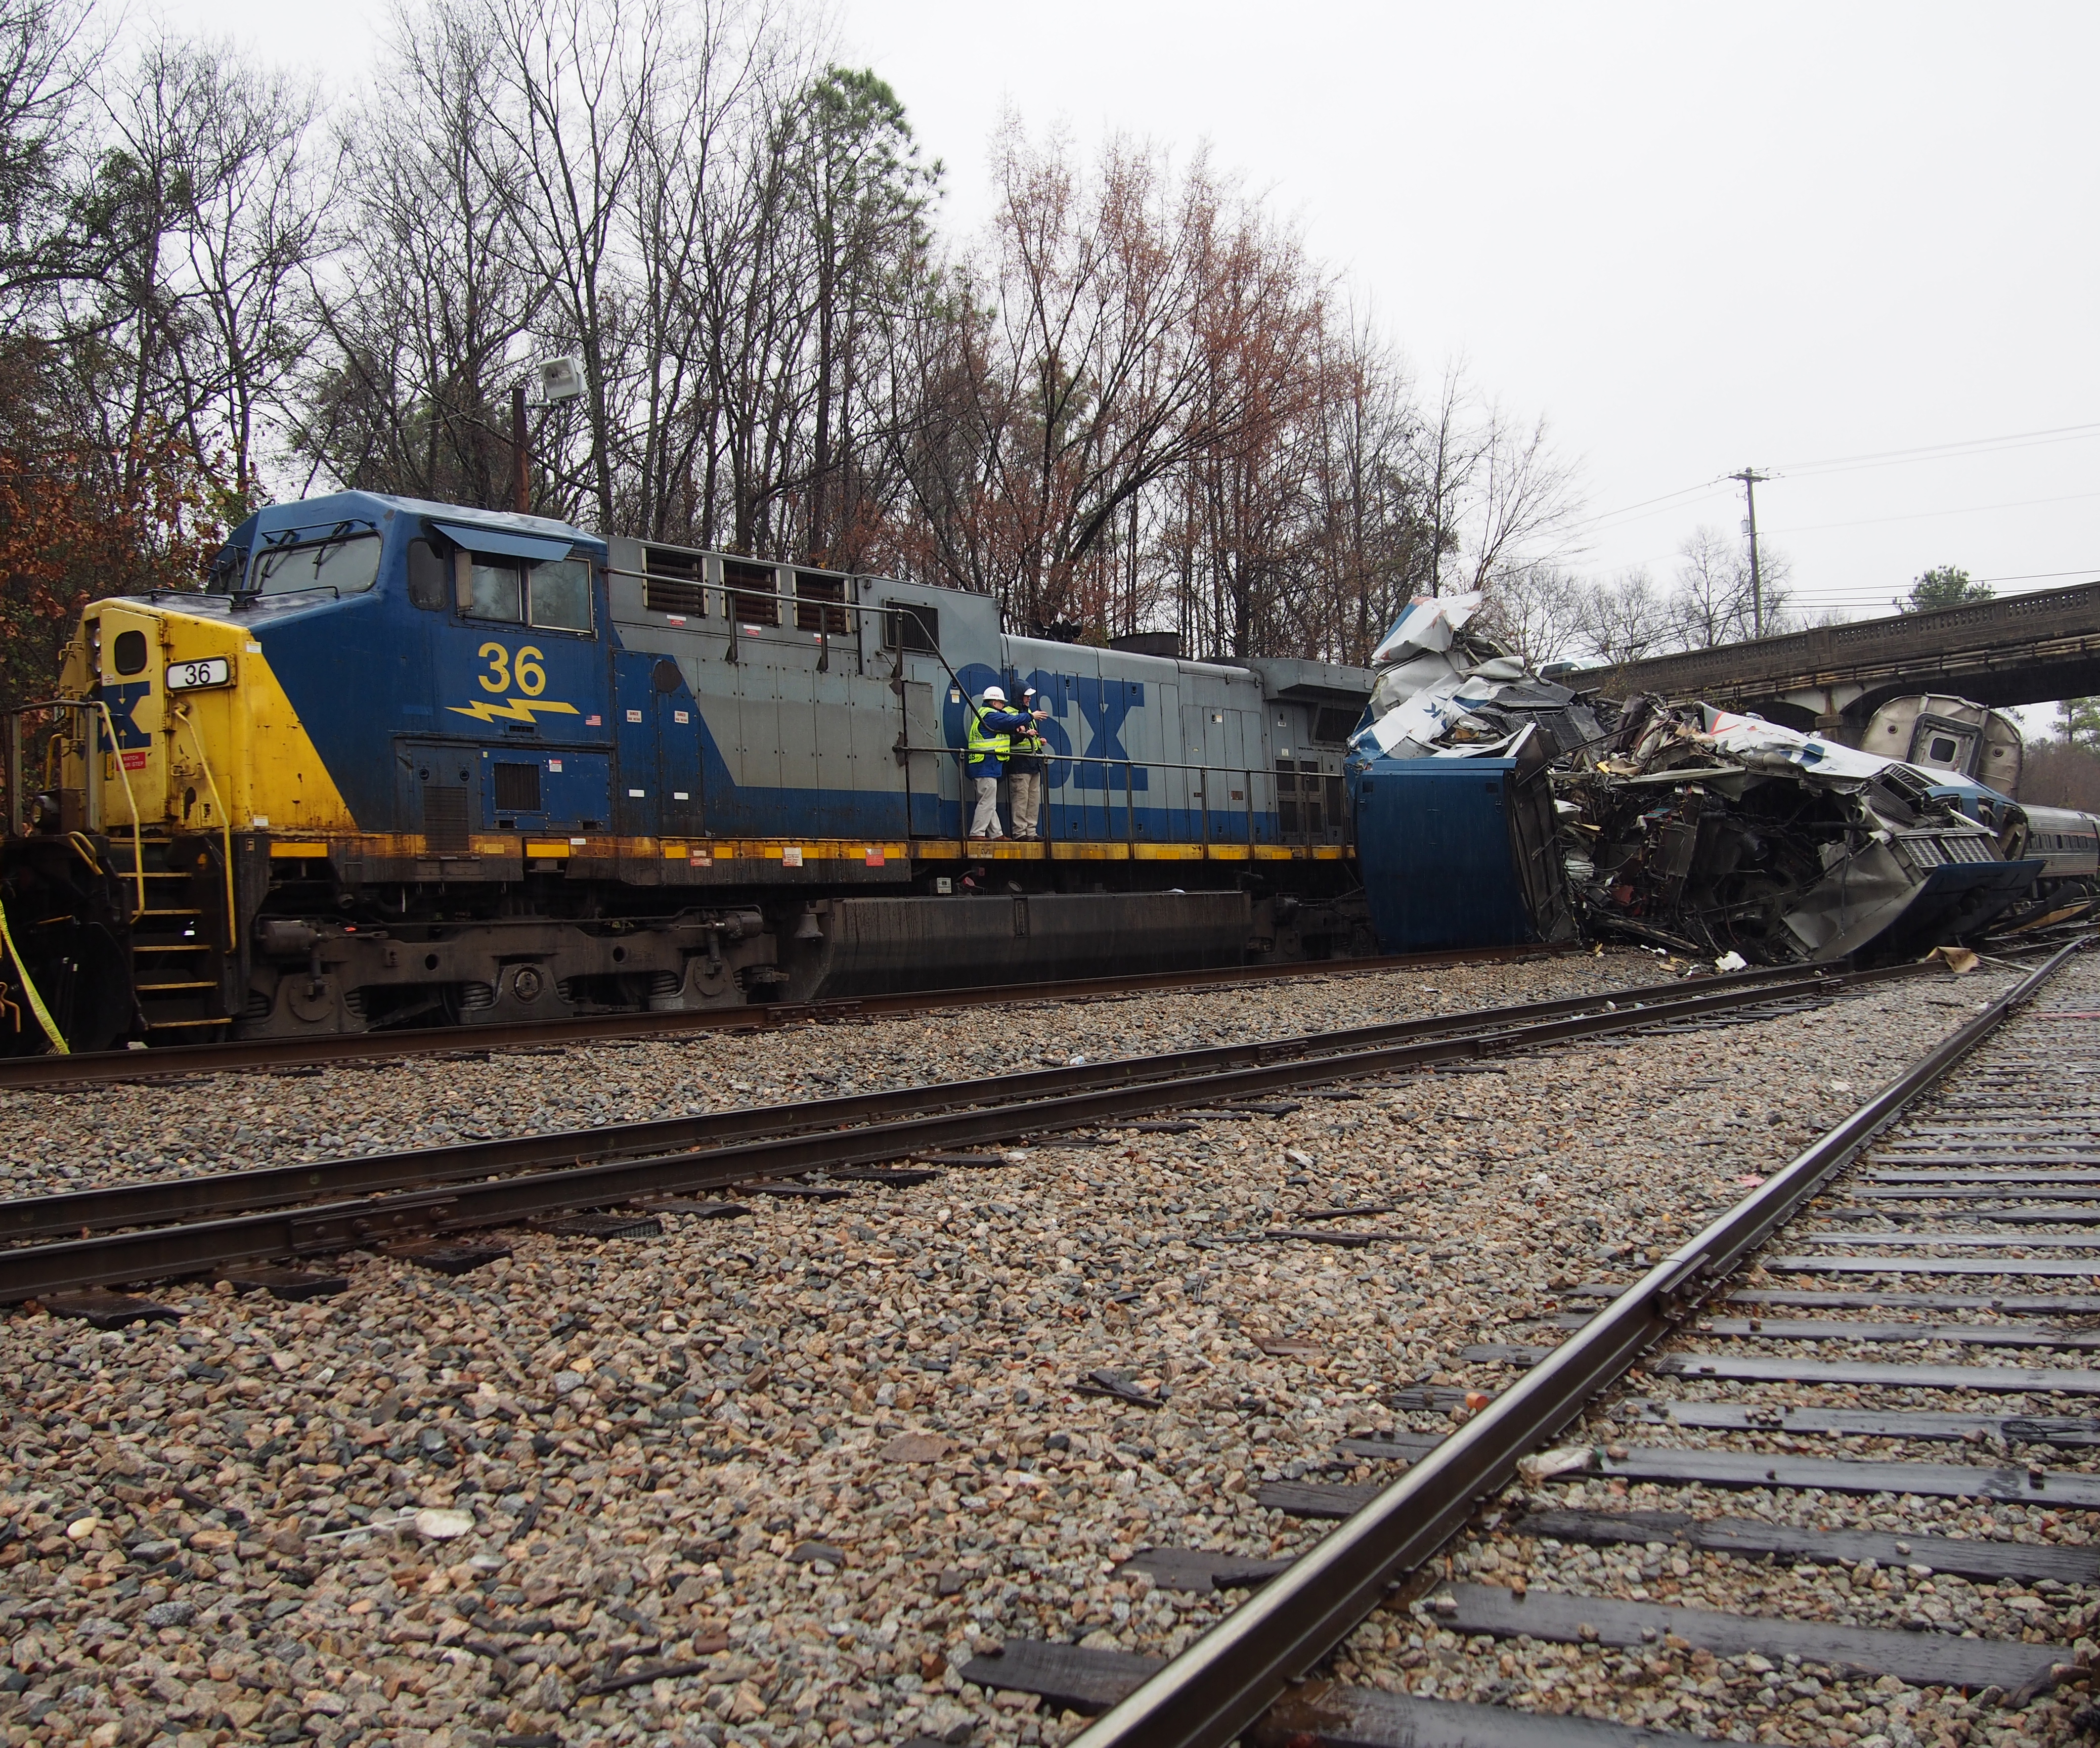 Derailed and damaged equipment on the Silica Storage track near Cayce, South Carolina.